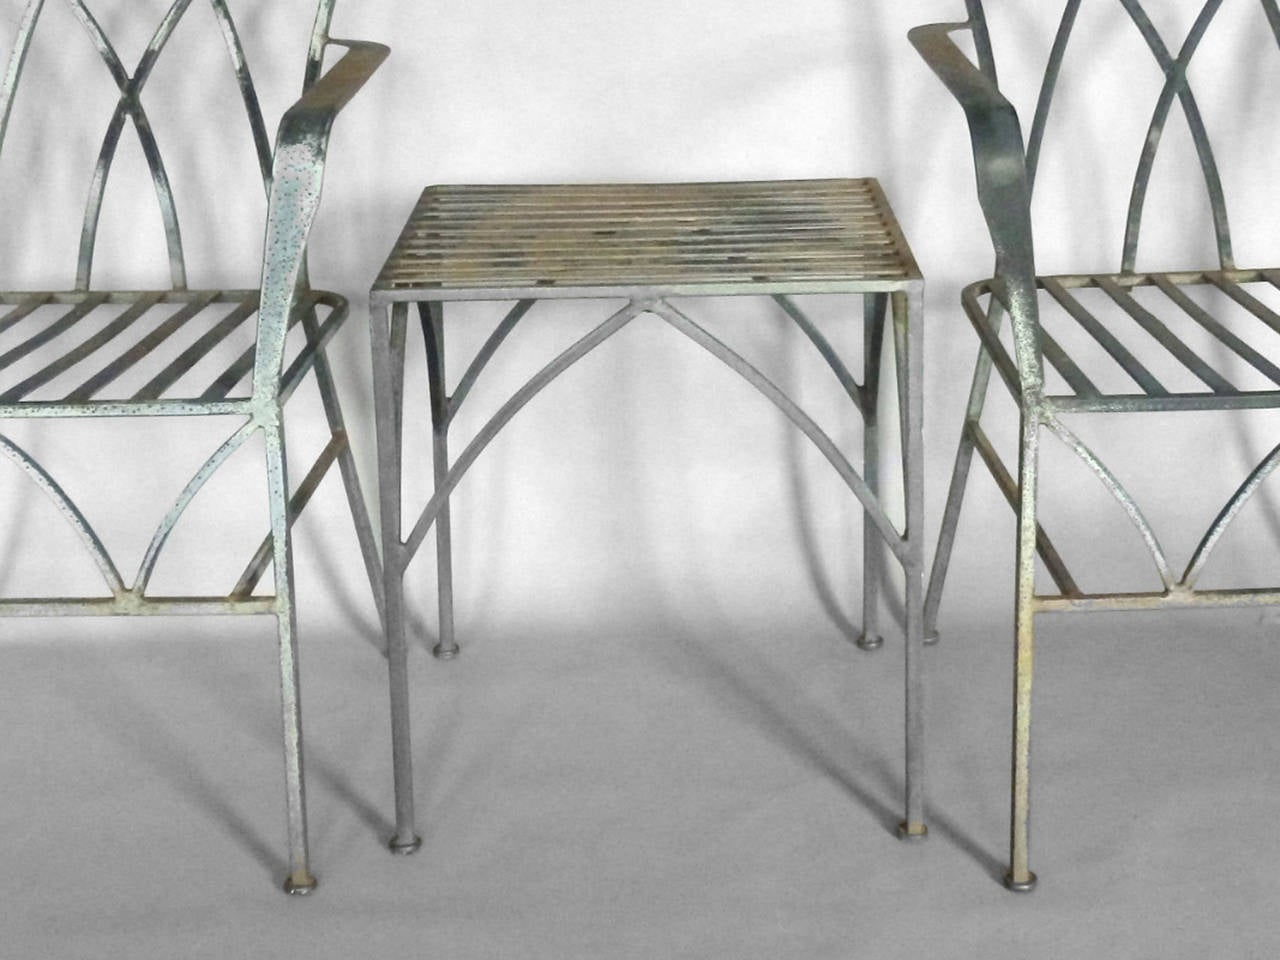 salterini wrought iron furniture. Salterini Wrought Iron Chairs With Table, Style Of Tommi Parzinger Measures: 23.25\u0026quot; Wide Furniture T